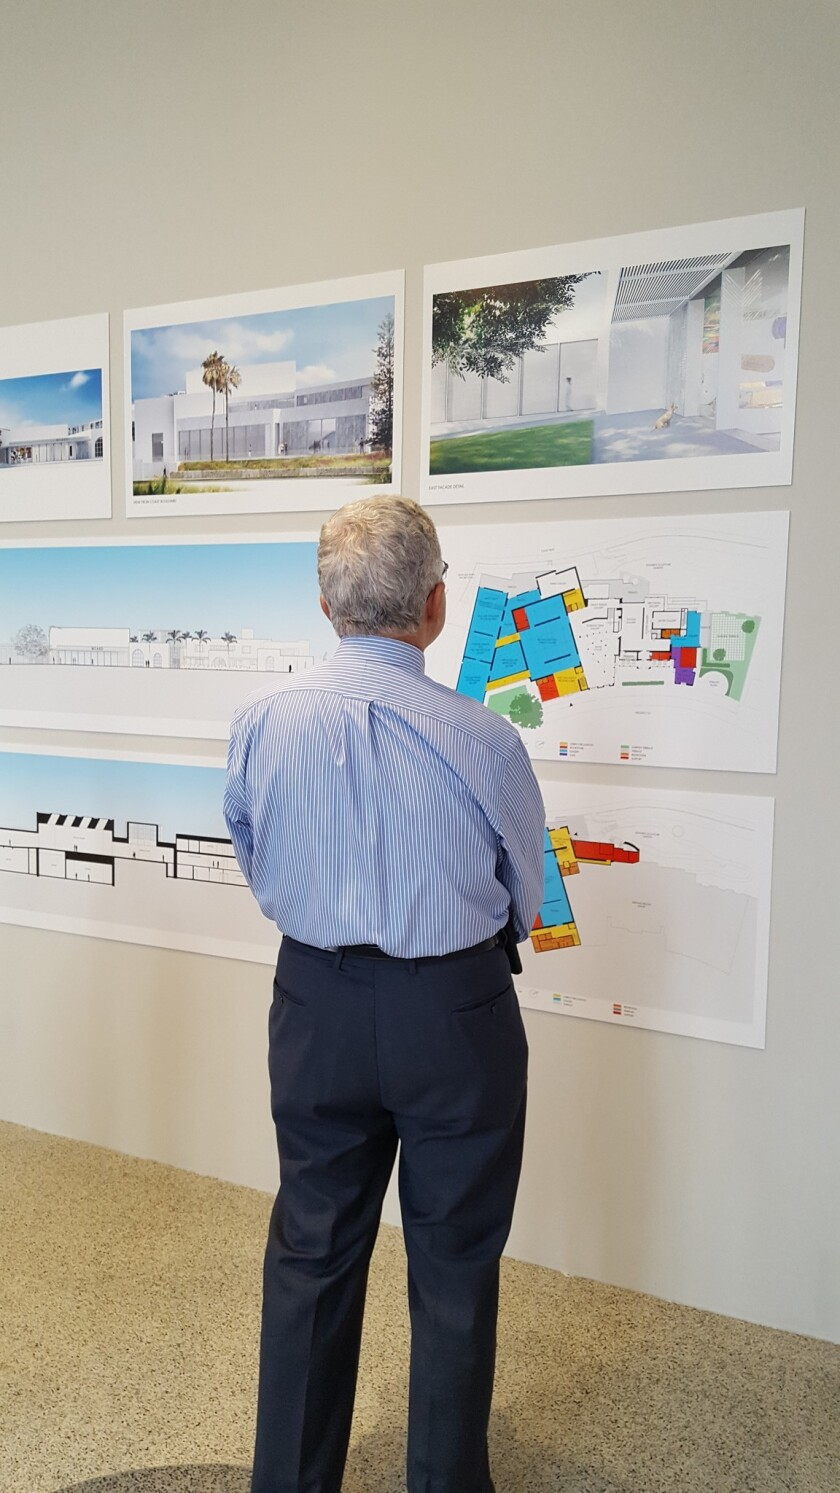 Plans for the expansion of the Museum of Contemporary Art San Diego in La Jolla are posted in the lobby at 700 Prospect St., and visible during business hours.